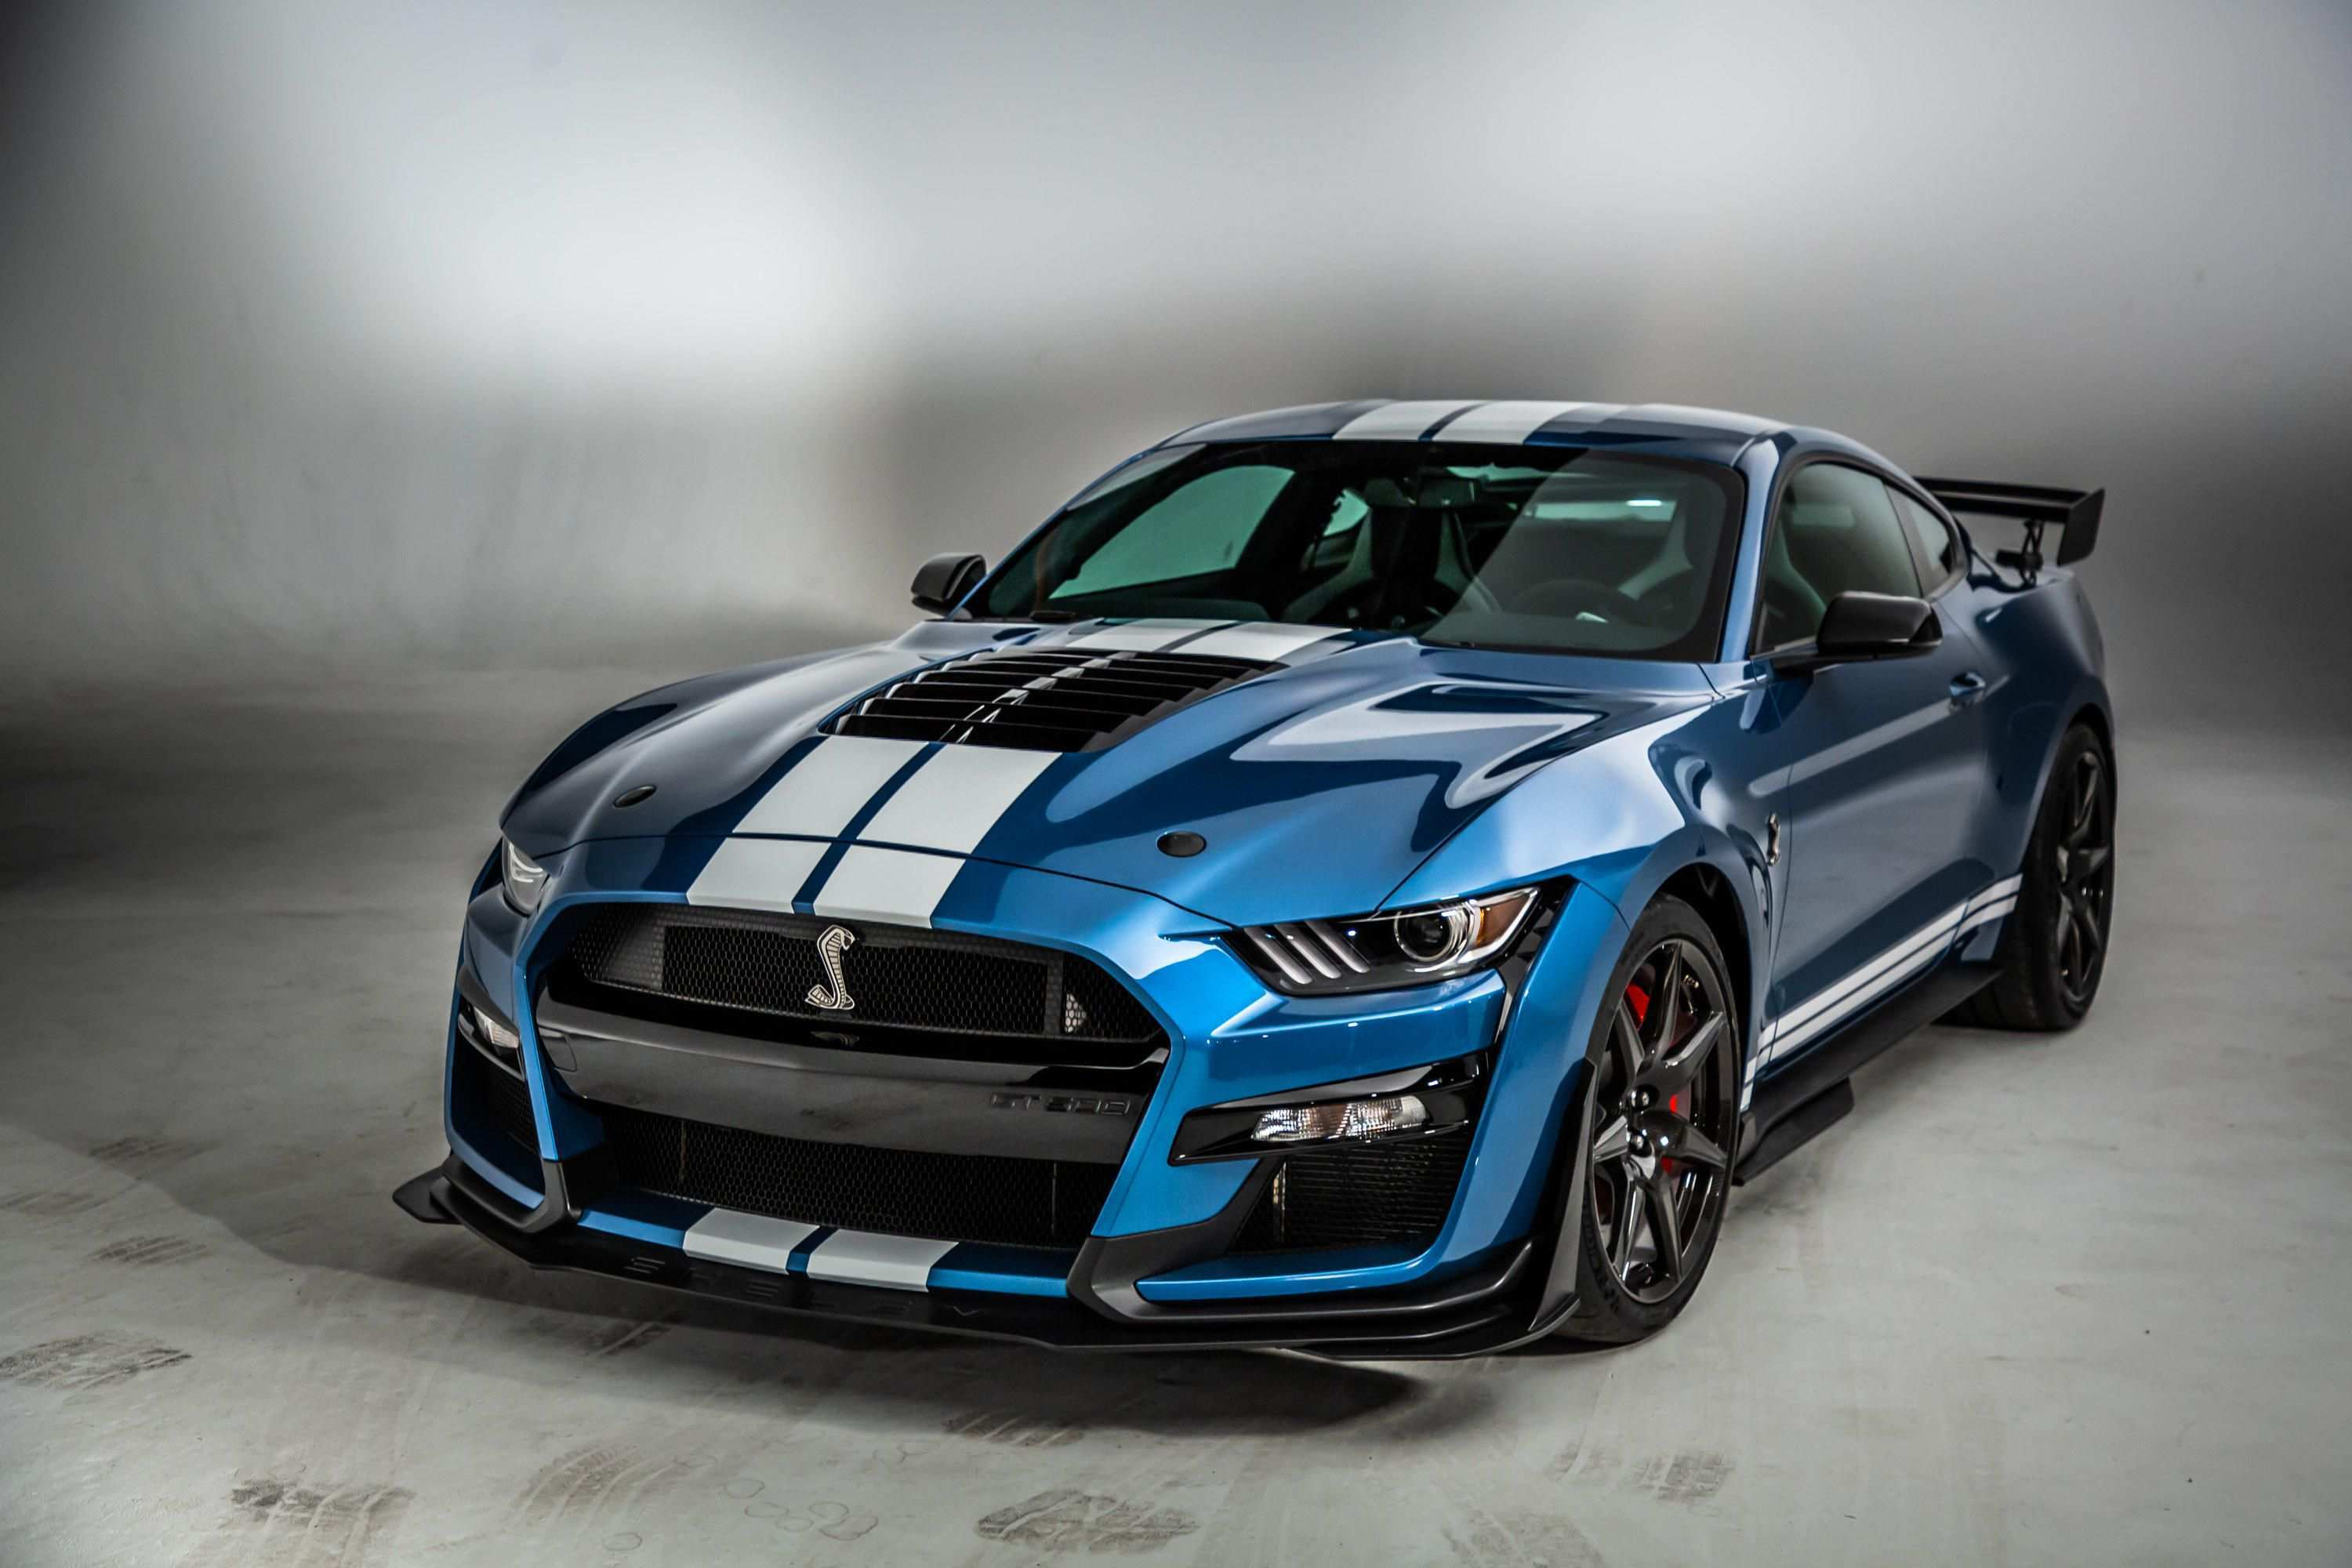 30 Great 2020 Ford Shelby Gt500 Price Photos with 2020 Ford Shelby Gt500 Price